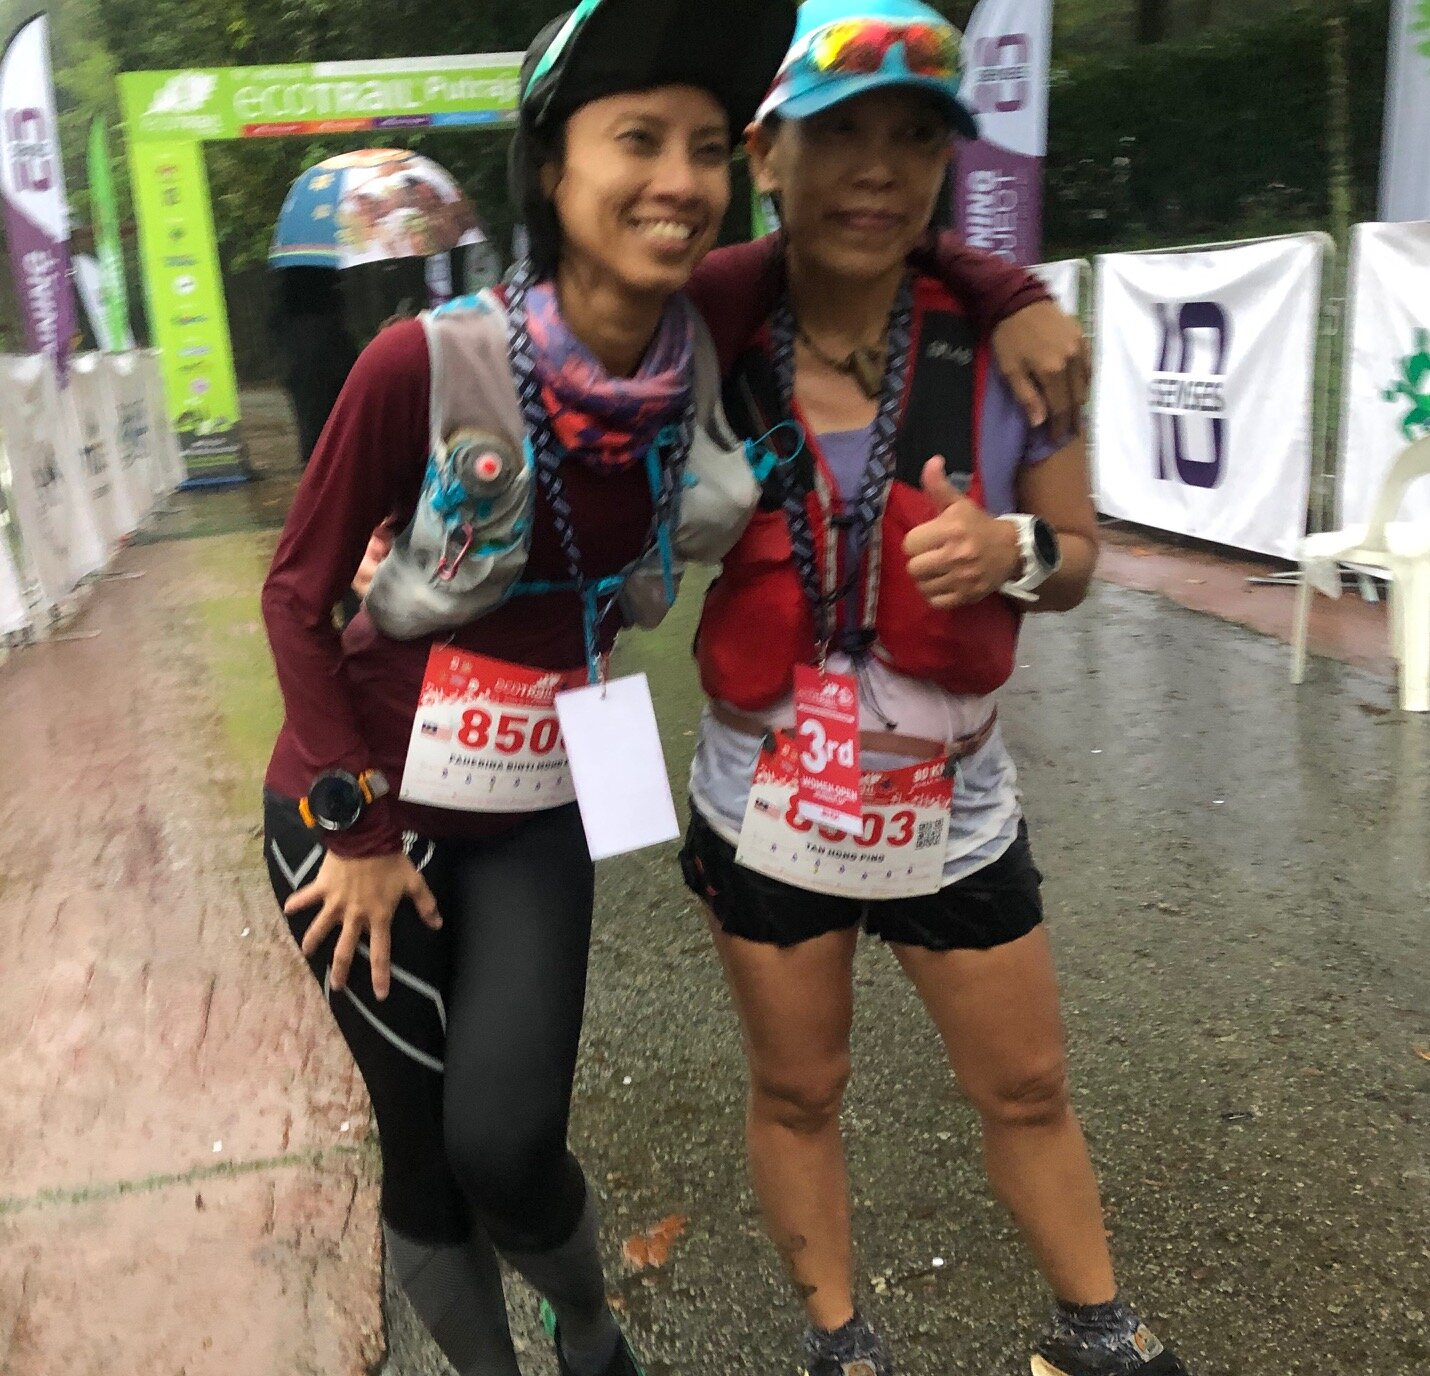 Faherina Mohd Esa and Renee Tan enjoyed their joint-run in the pouring rain at the end